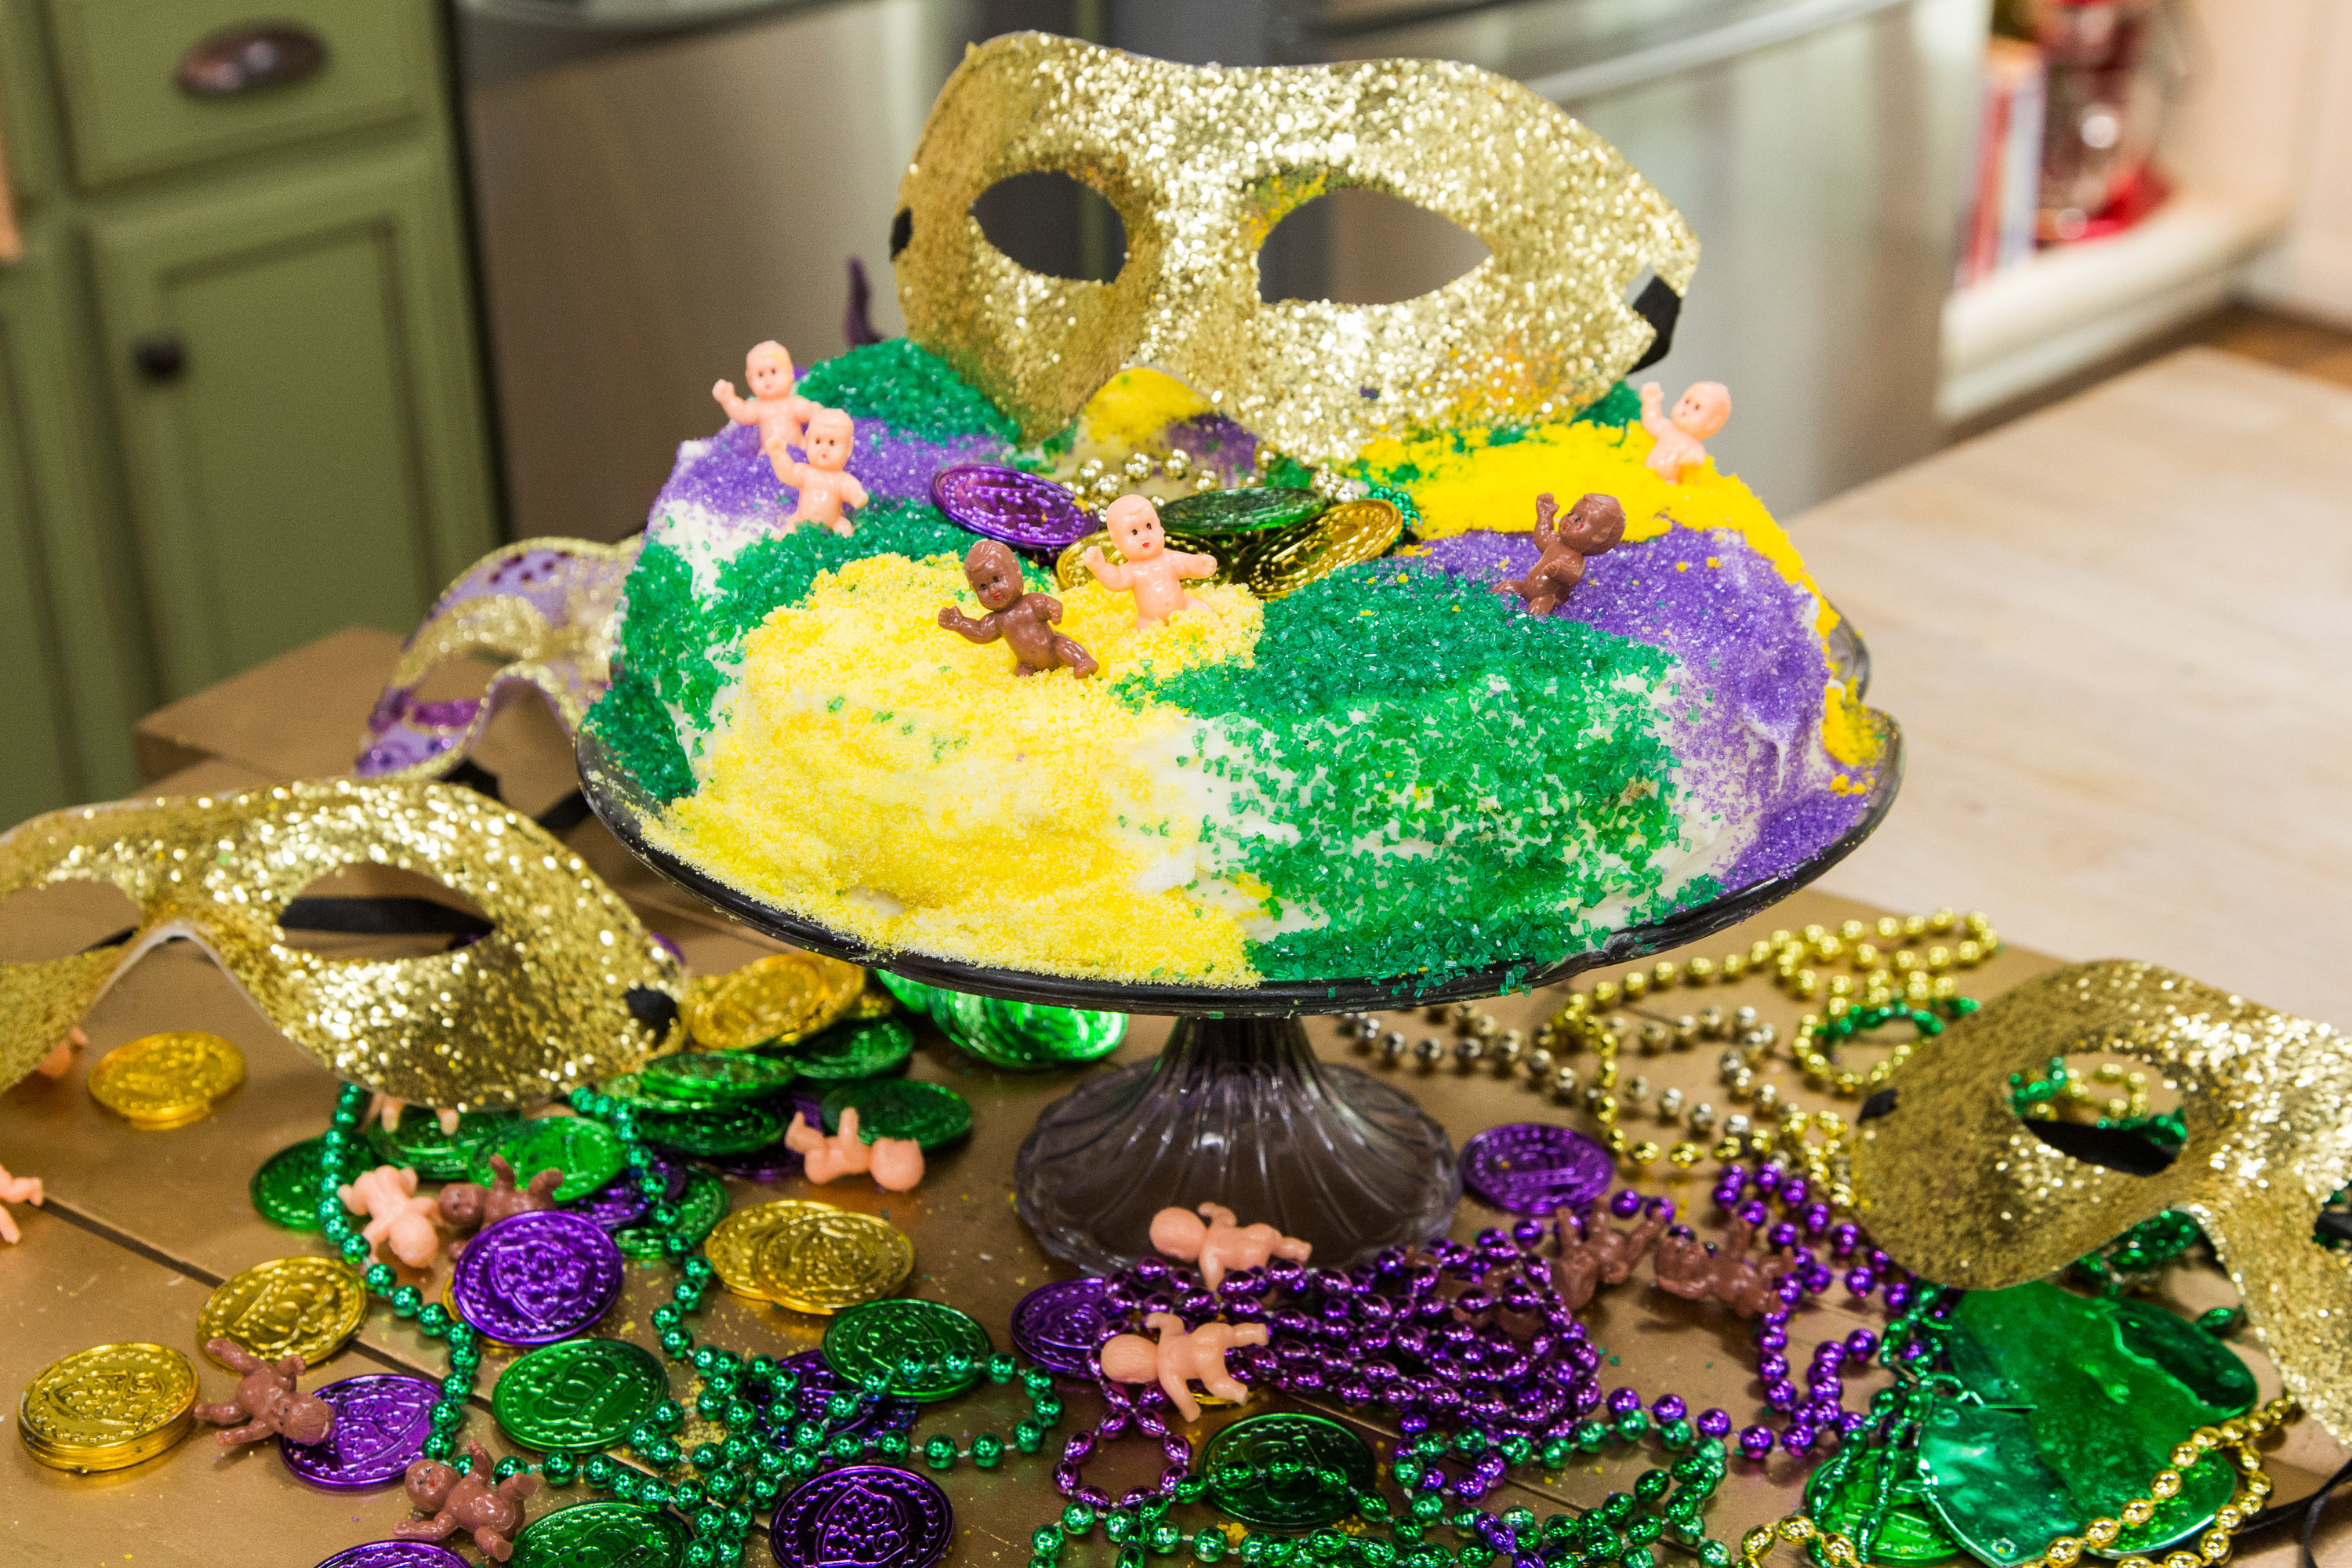 Recipes - Home & Family: Mardi Gras King Cake | Hallmark Channel